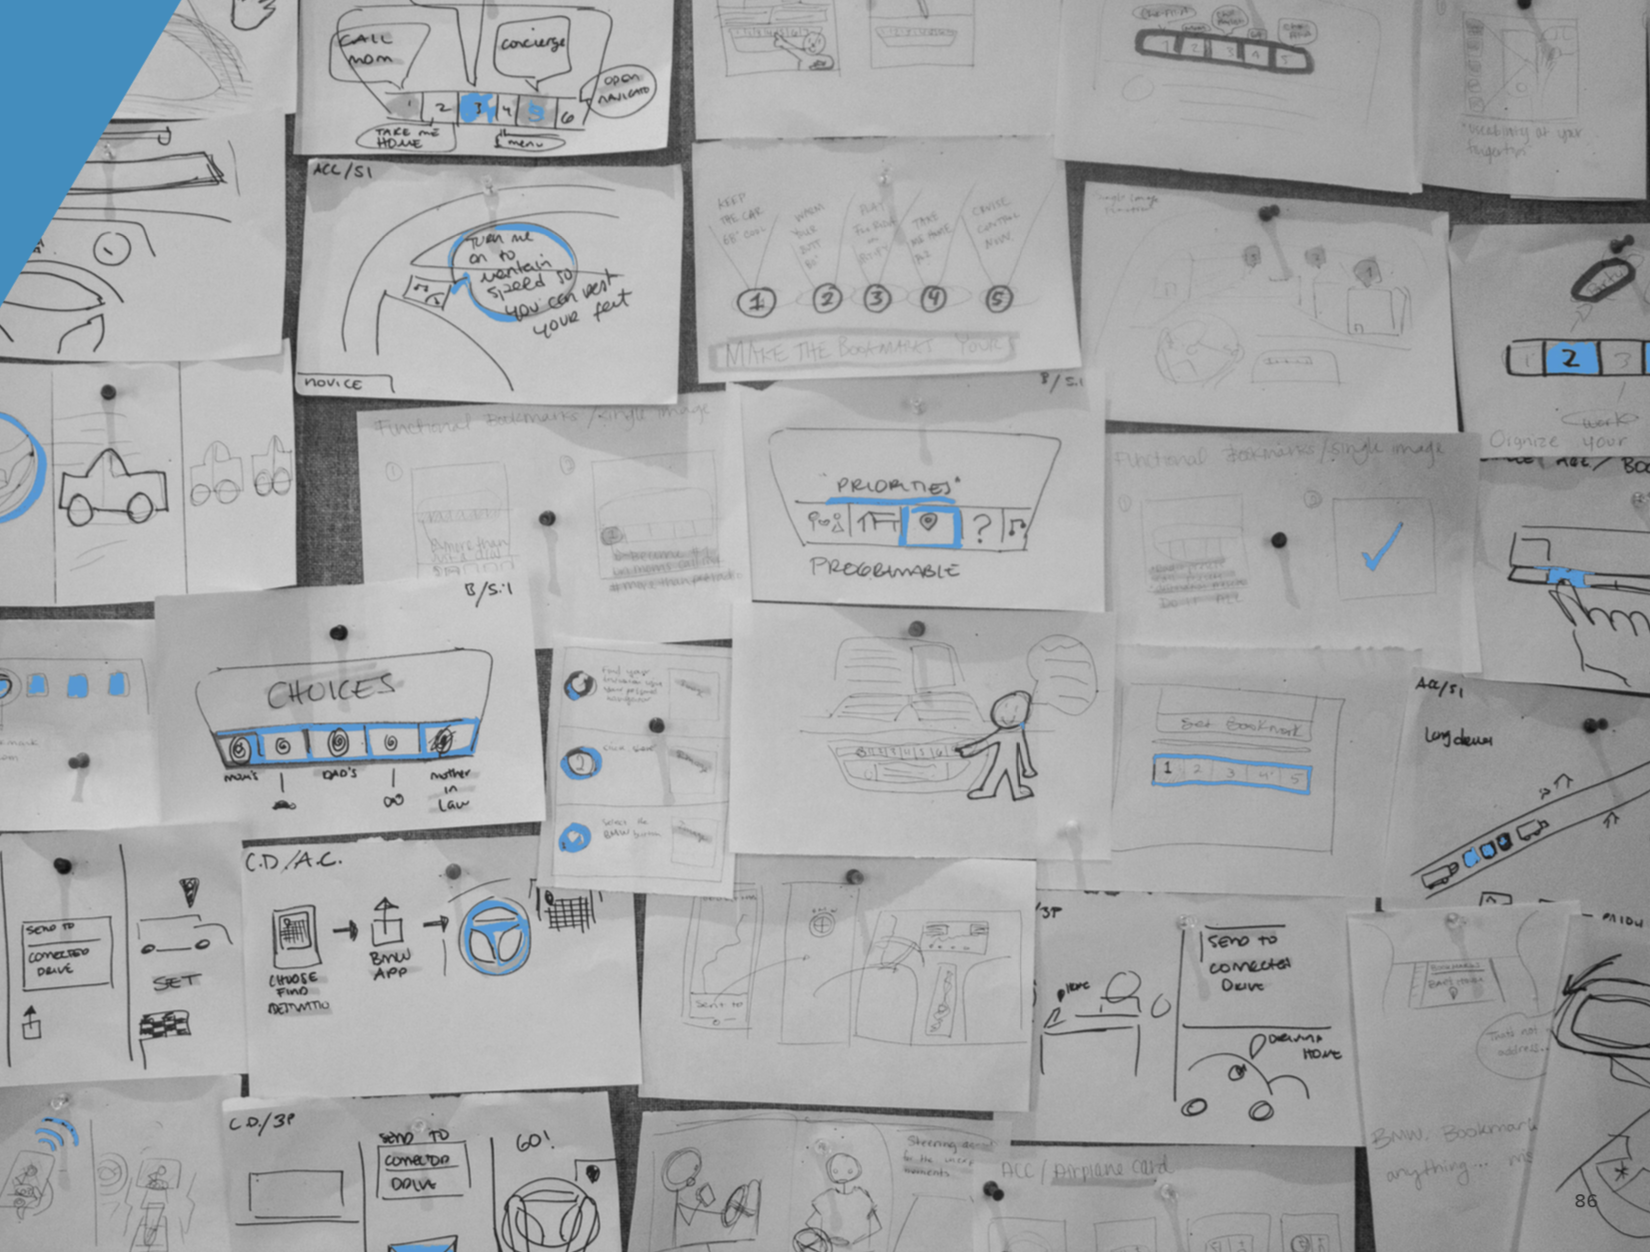 We differentiate ways to access a feature and then combined similar ideas to produce stronger concepts. We pushed ourselves to produce more rapid sketching and challenged our initial assumptions.